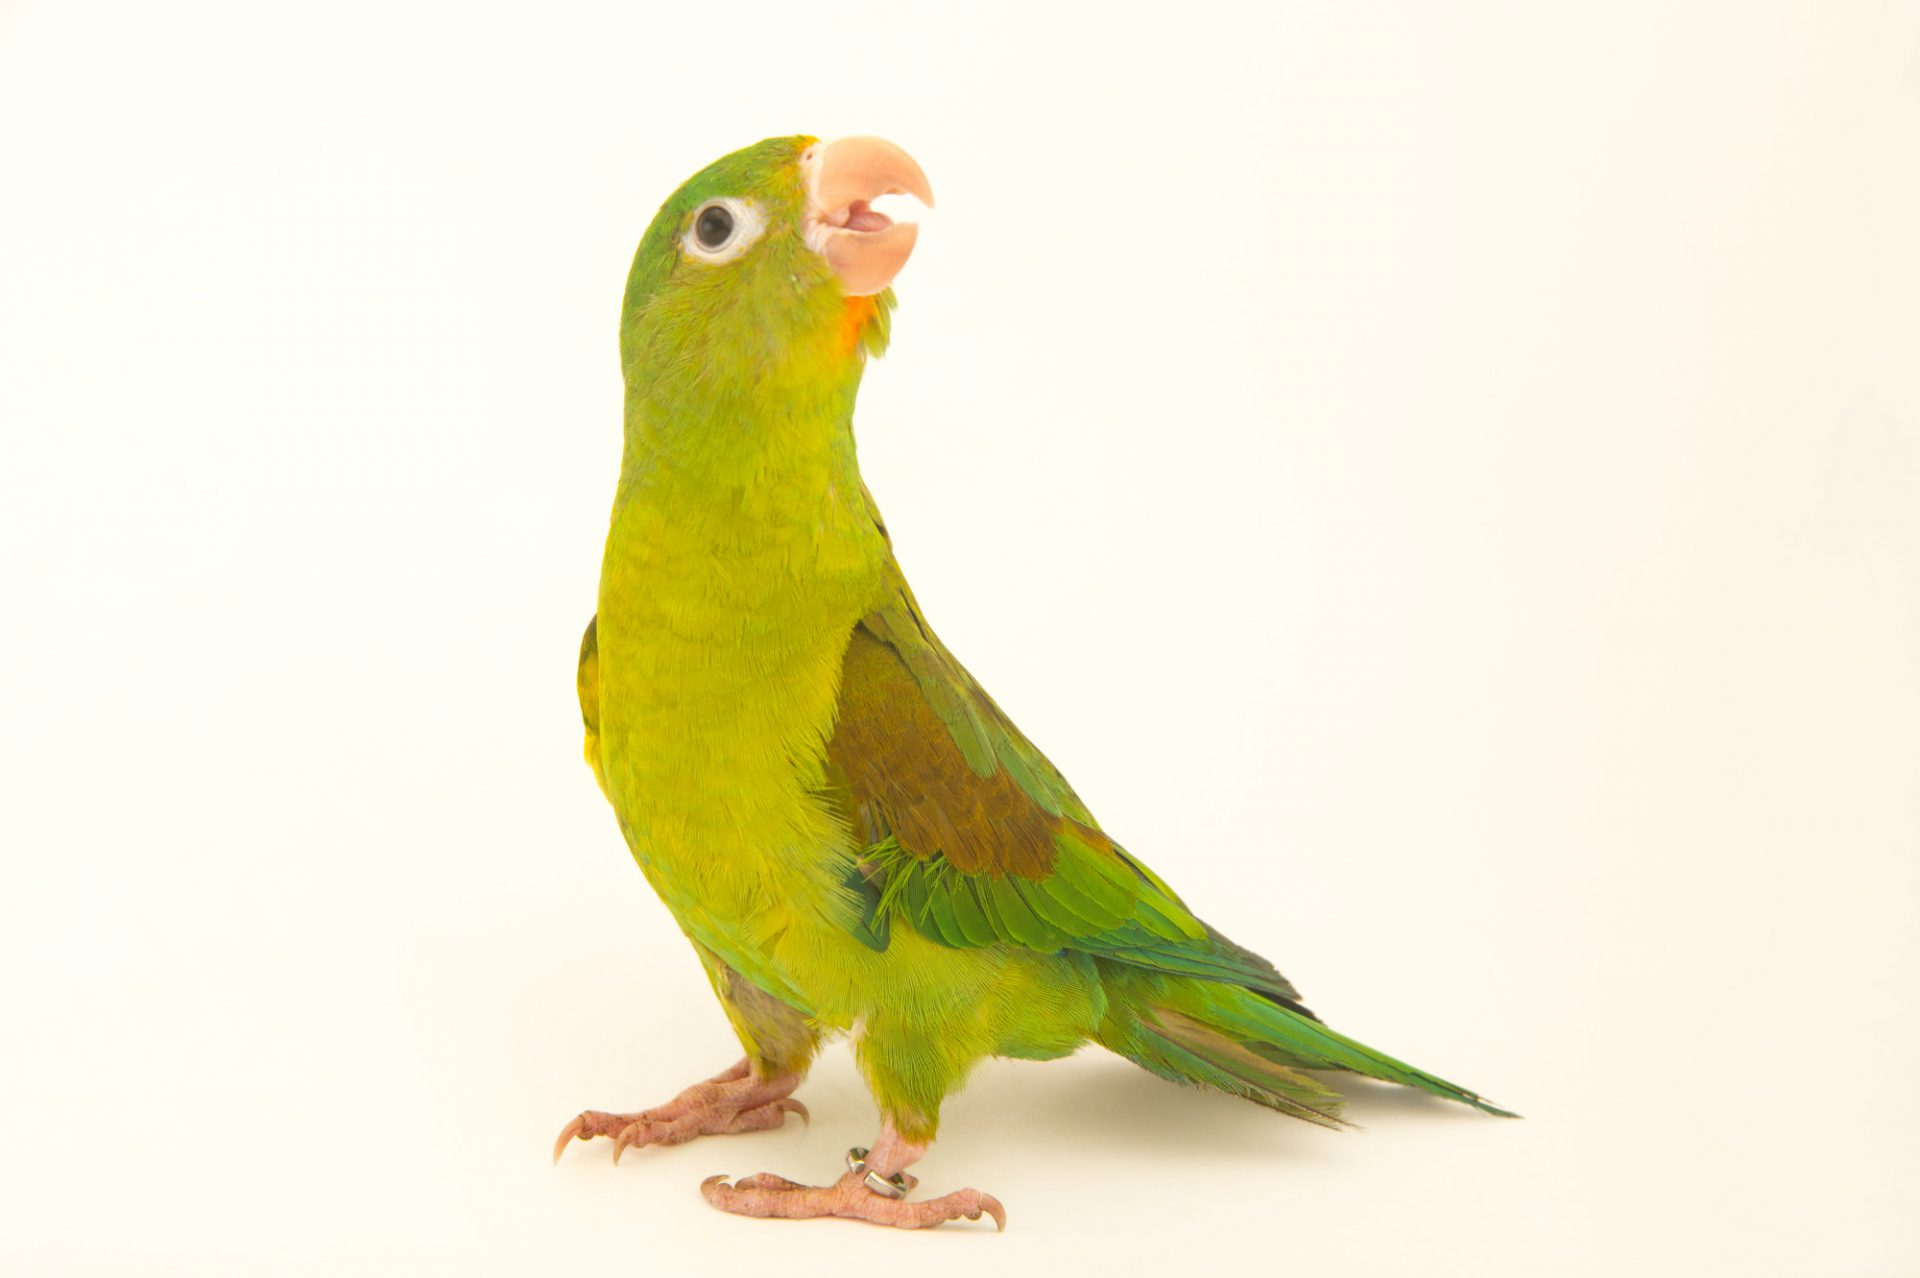 Picture of an orange-chinned parakeet (Brotogeris jugularis) at the National Aviary breeding center.